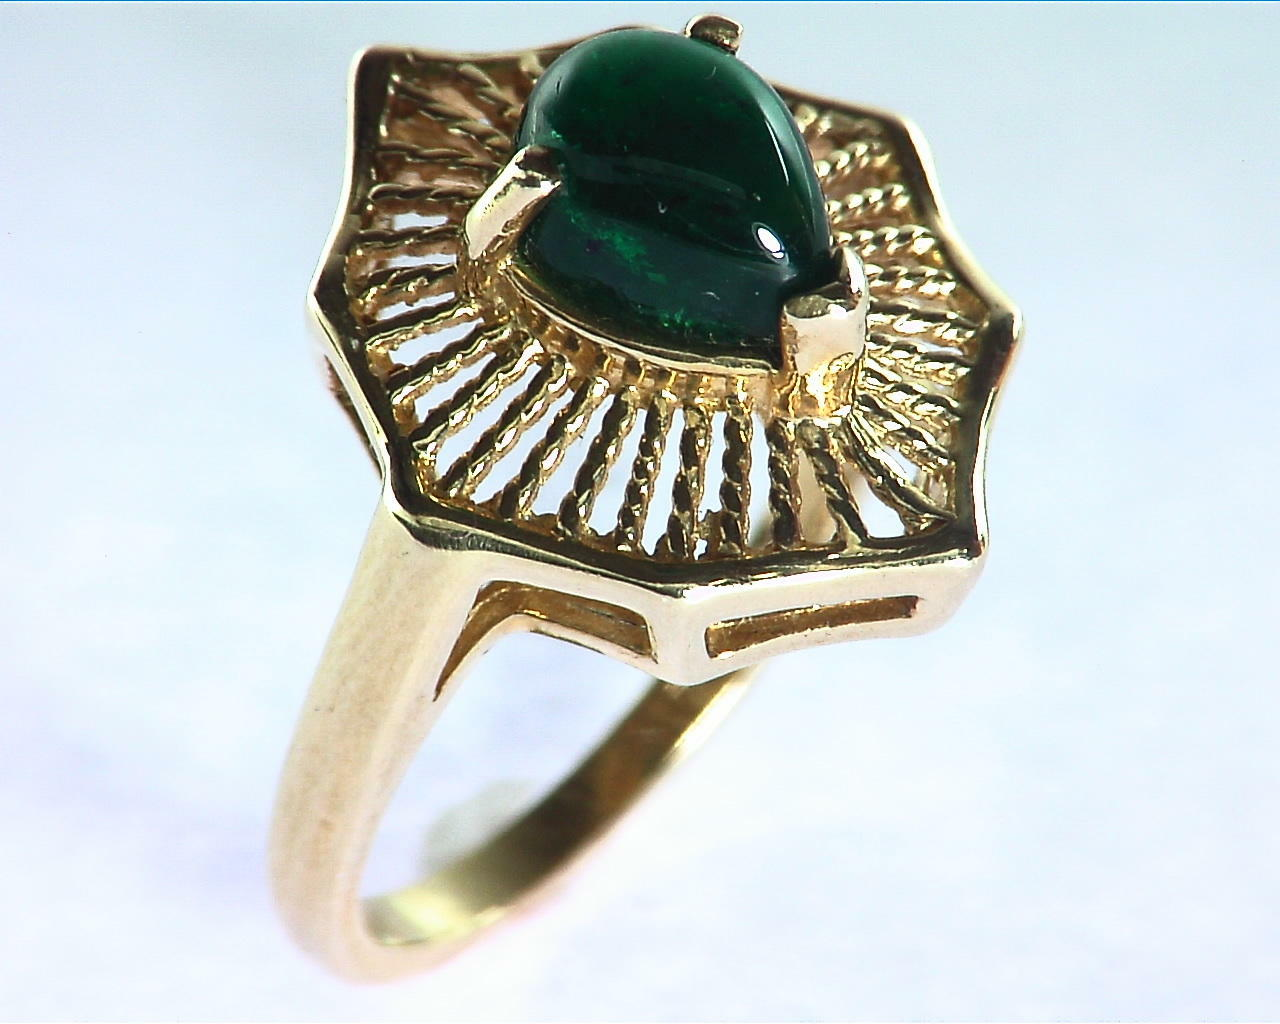 Emerald Engagement Ring in 14 kt Yellow Gold in a Beautiful Design RFK126 3